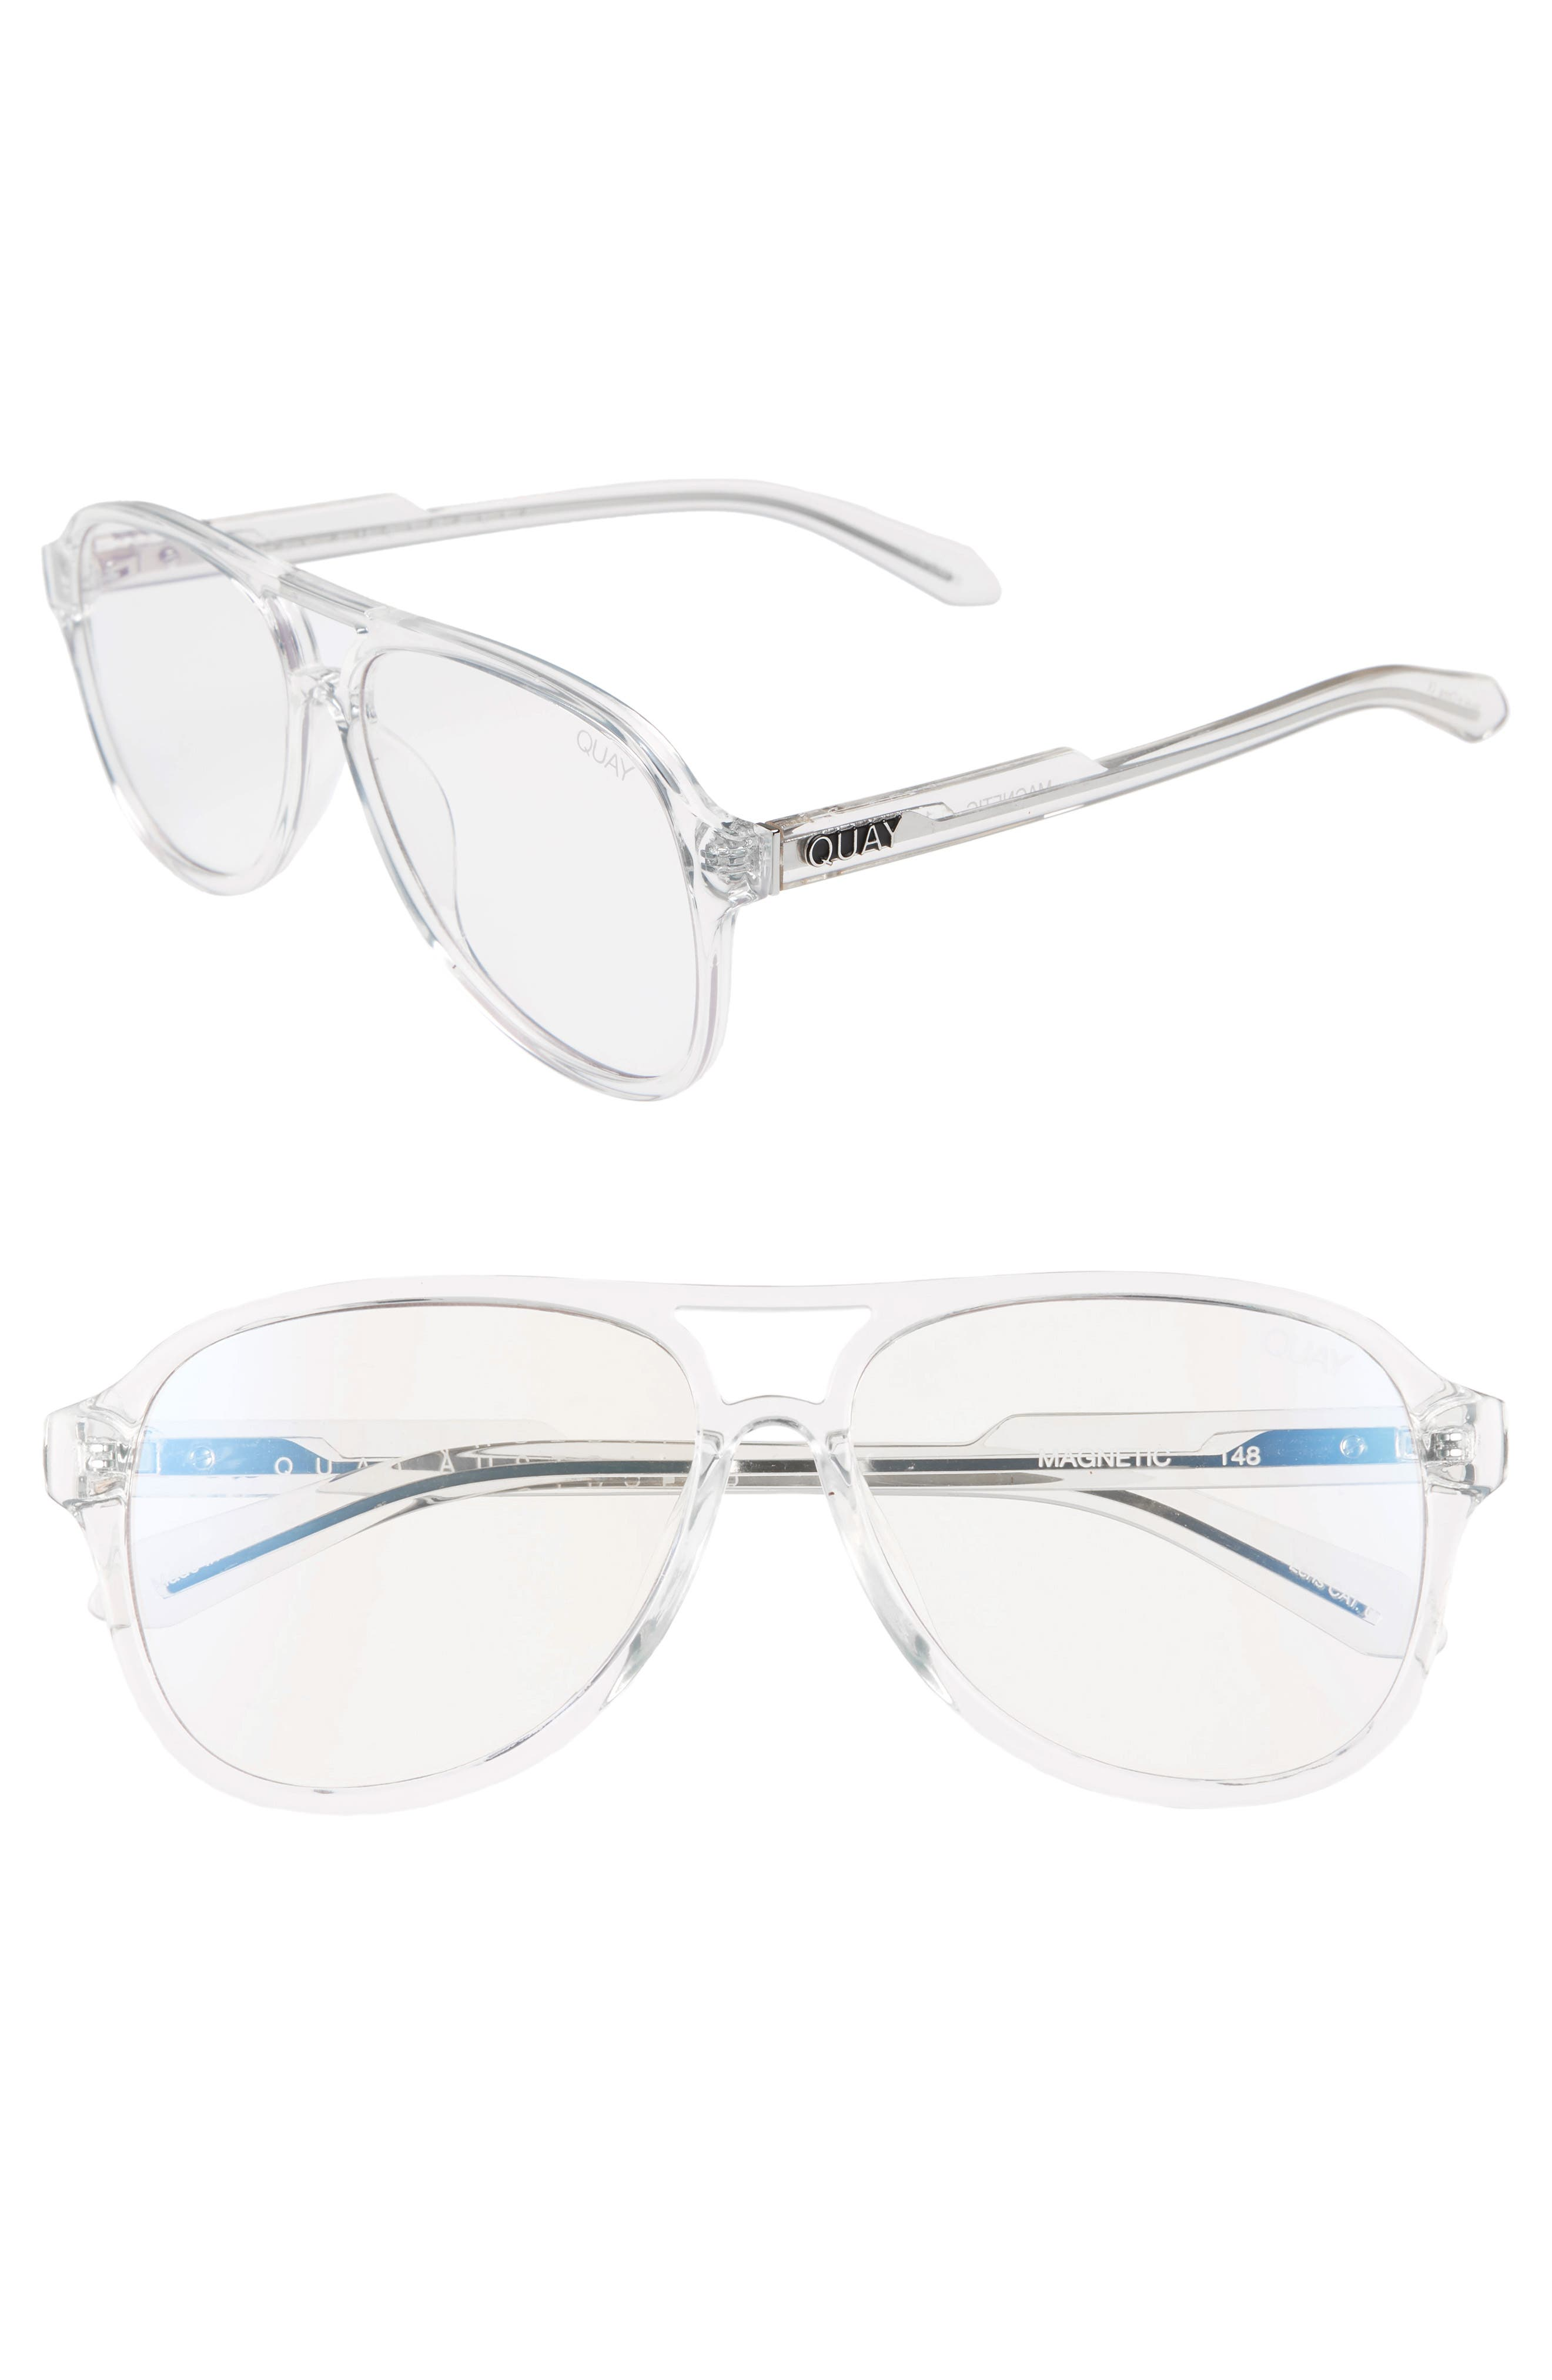 Magnetic 55mm Aviator Fashion Glasses,                             Main thumbnail 1, color,                             CLEAR/ CLEAR